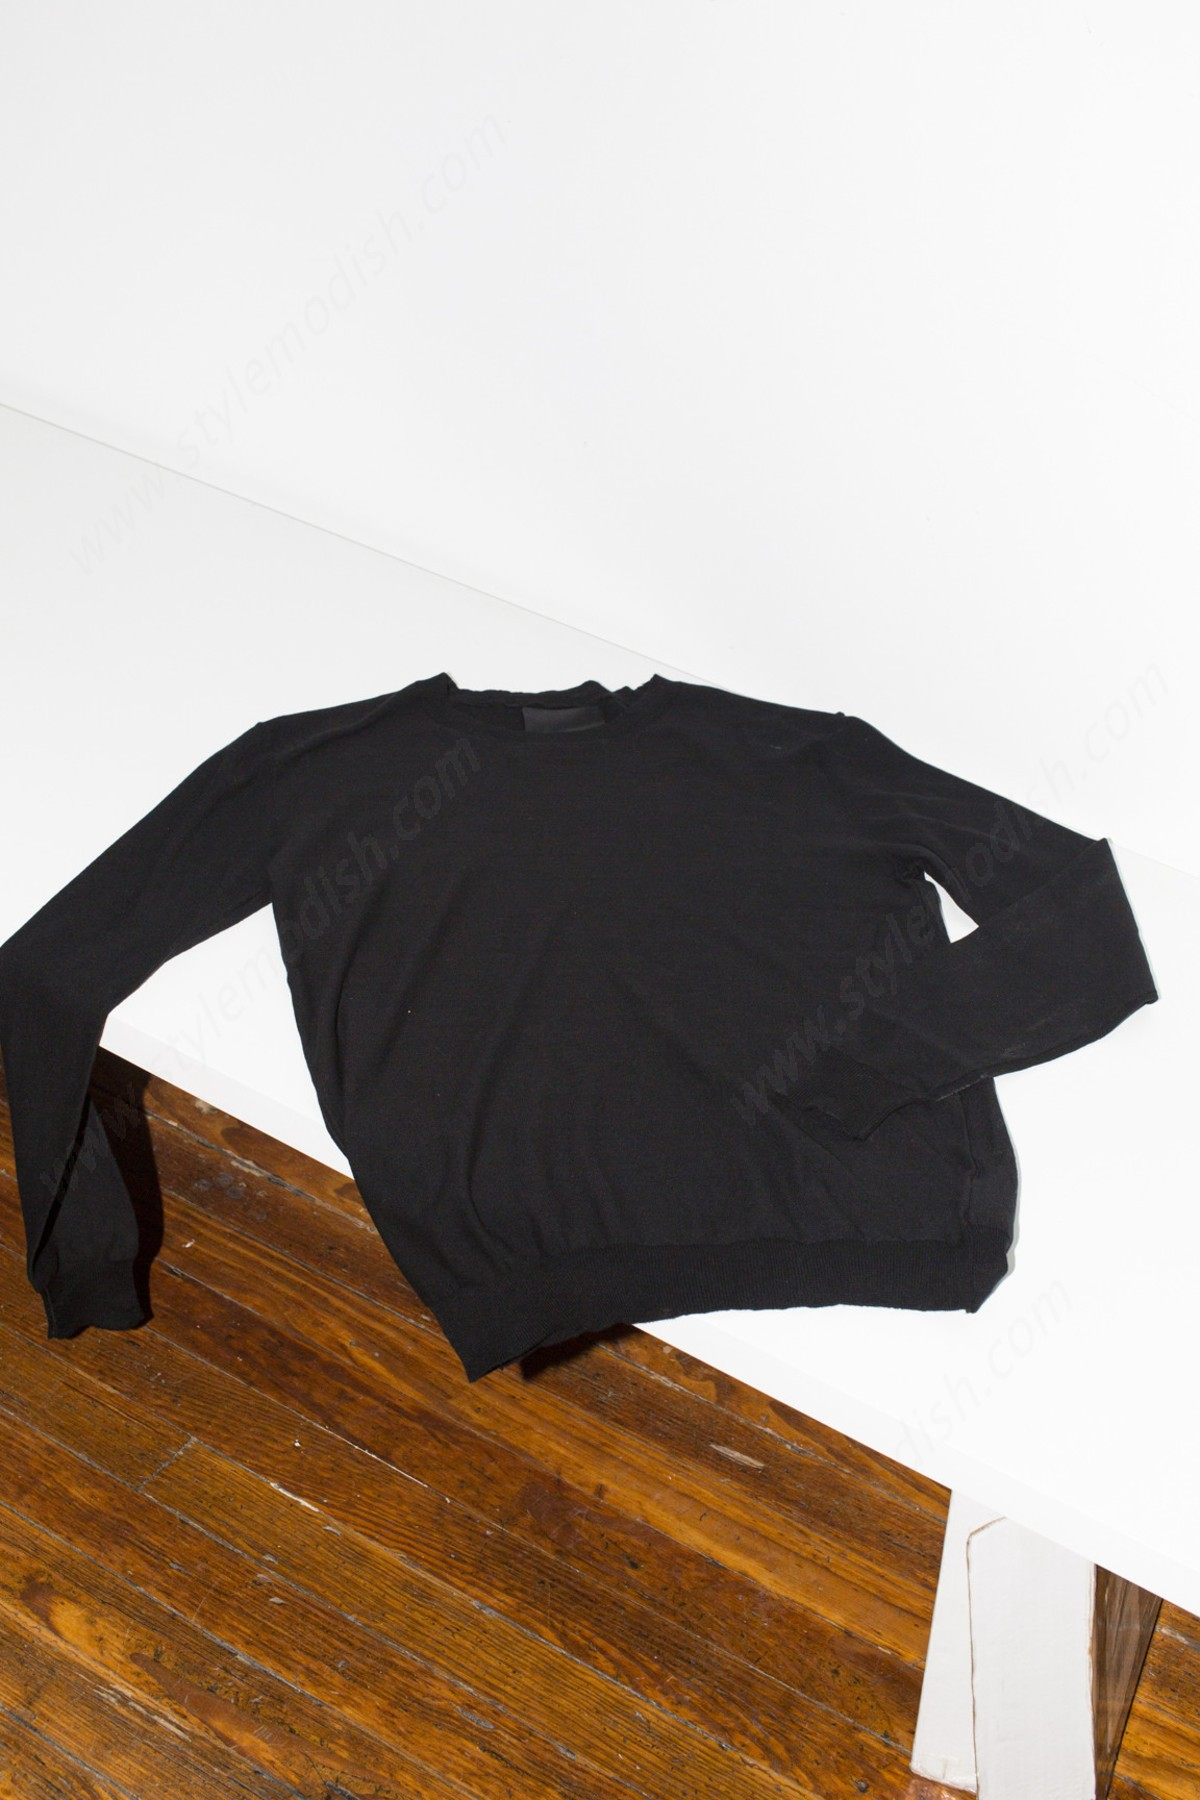 Assembly New York Womens's Assembly York Antwerp Cotton Pullover - Black Tops - -1